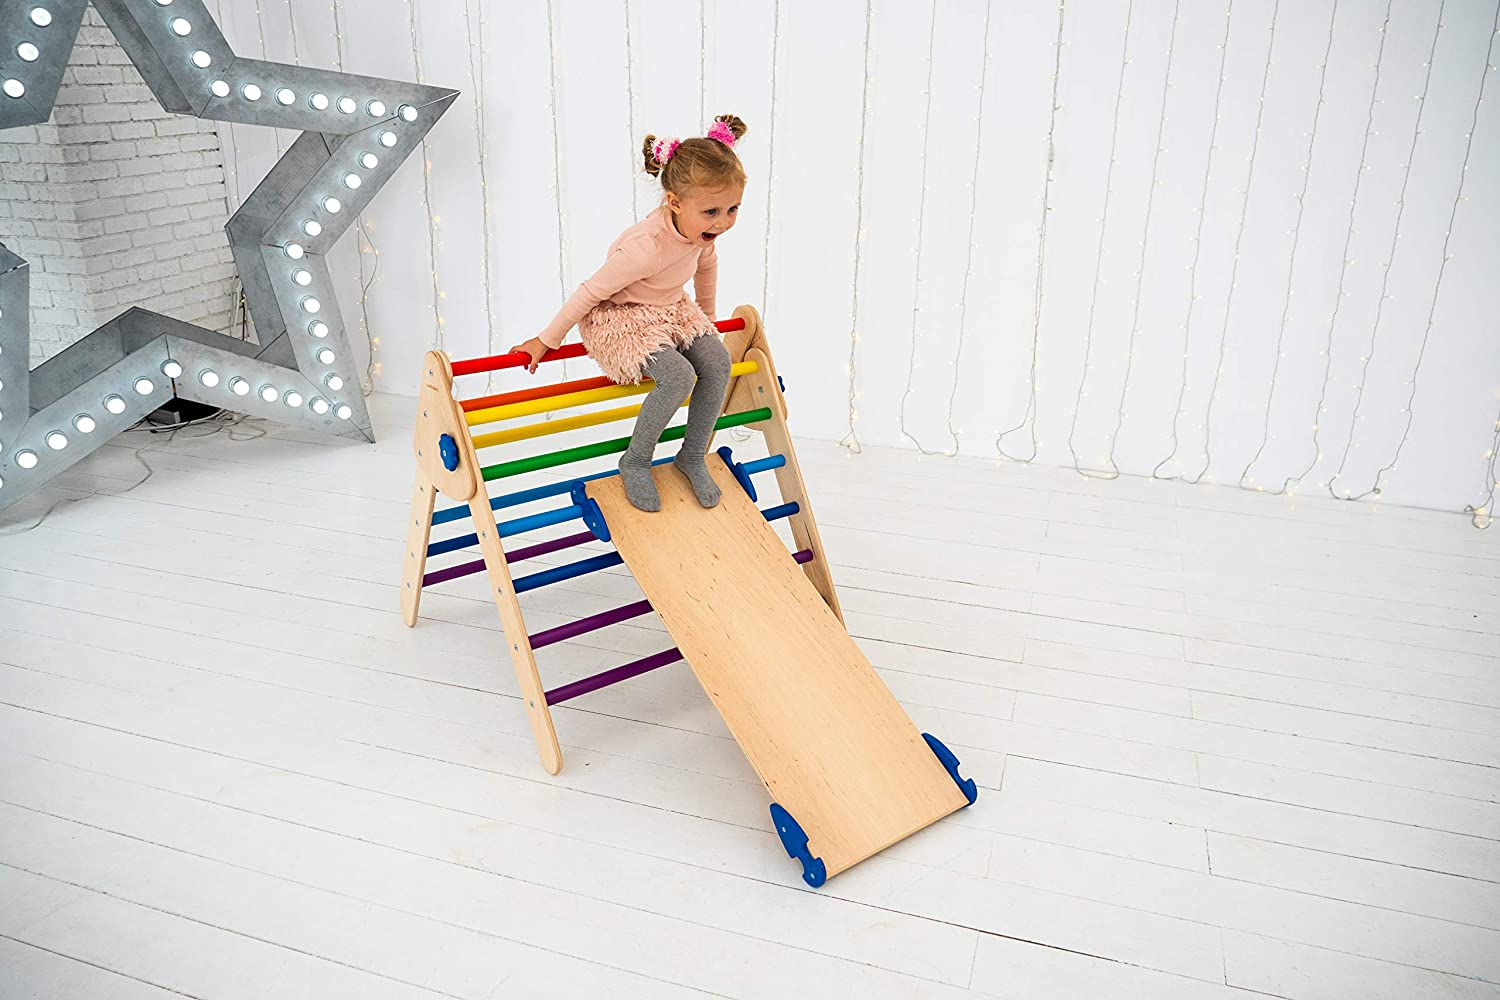 Woodandhearts Set of 3 Pikler Triangle for Kids Toddlers Rock with ramp Learning Waldorf Climbing Arch Toy for Toddler N.Wood+Rainbow Montessori Climber Ladder Slide Standard Size